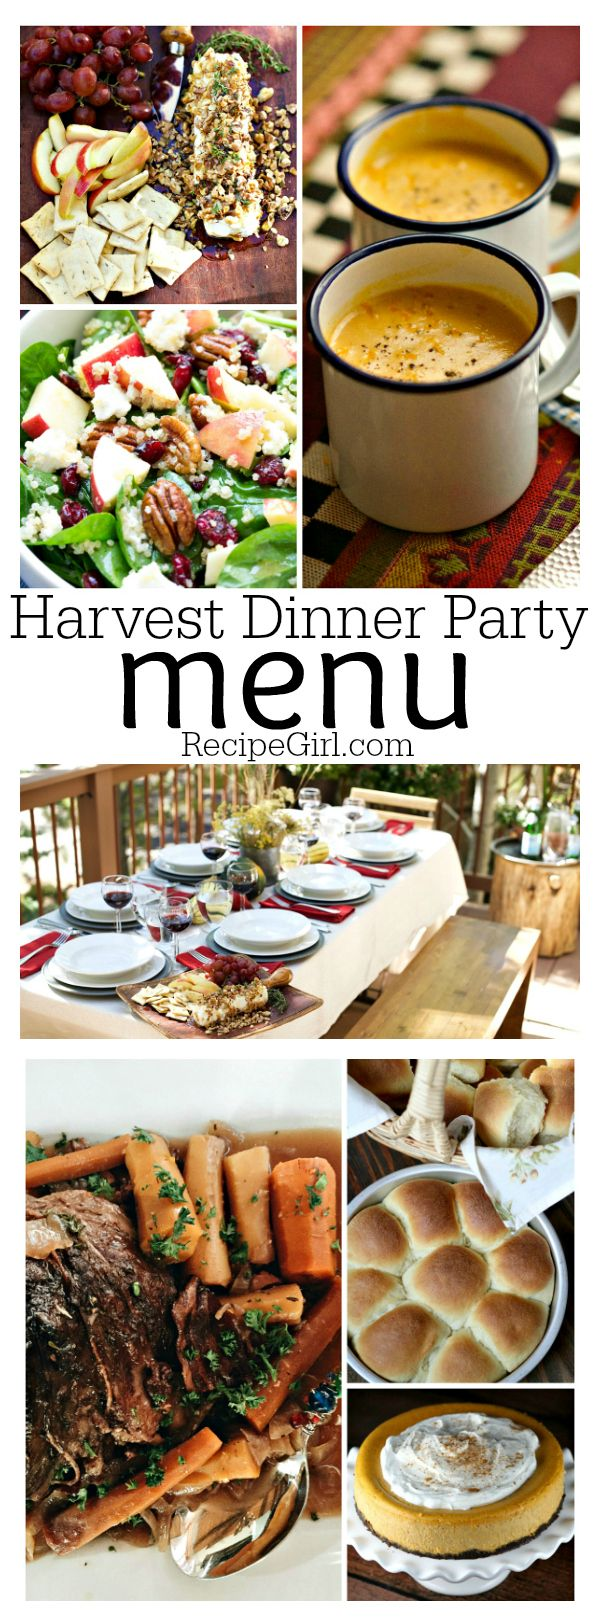 Harvest Dinner Party Menu: complete menu with recipes and decor idea  included. Lovely fall